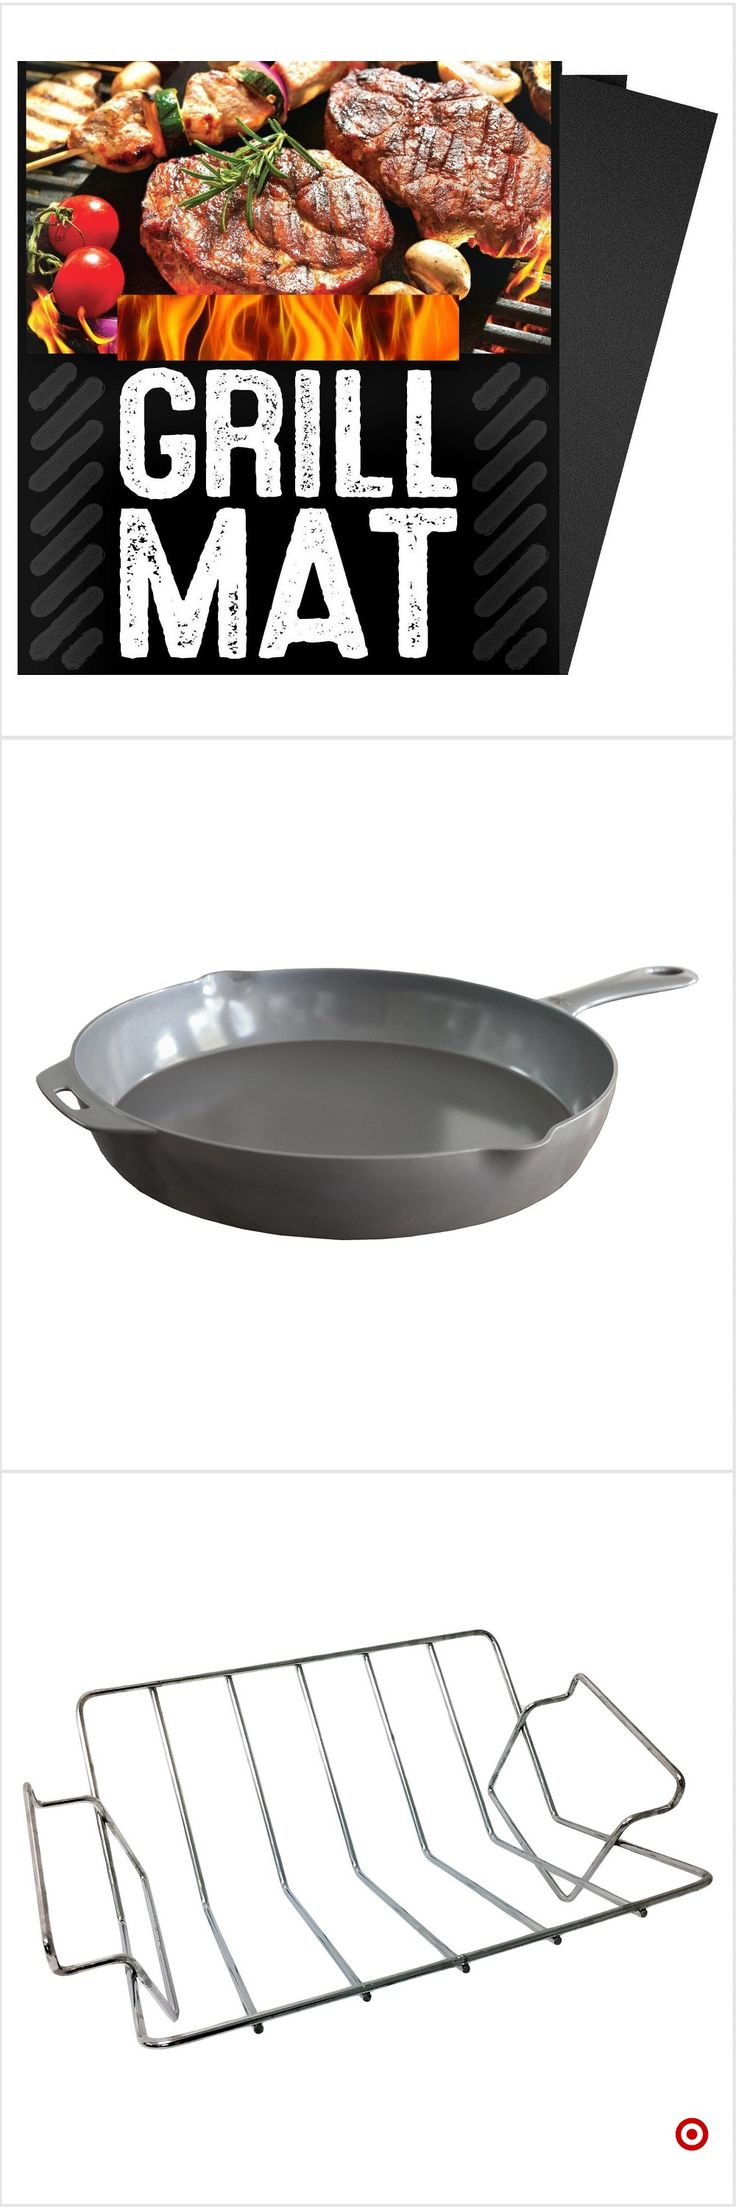 Shop Target for grill cookware you will love at great low prices. Free shipping on orders of $35+ or free same-day pick-up in store.